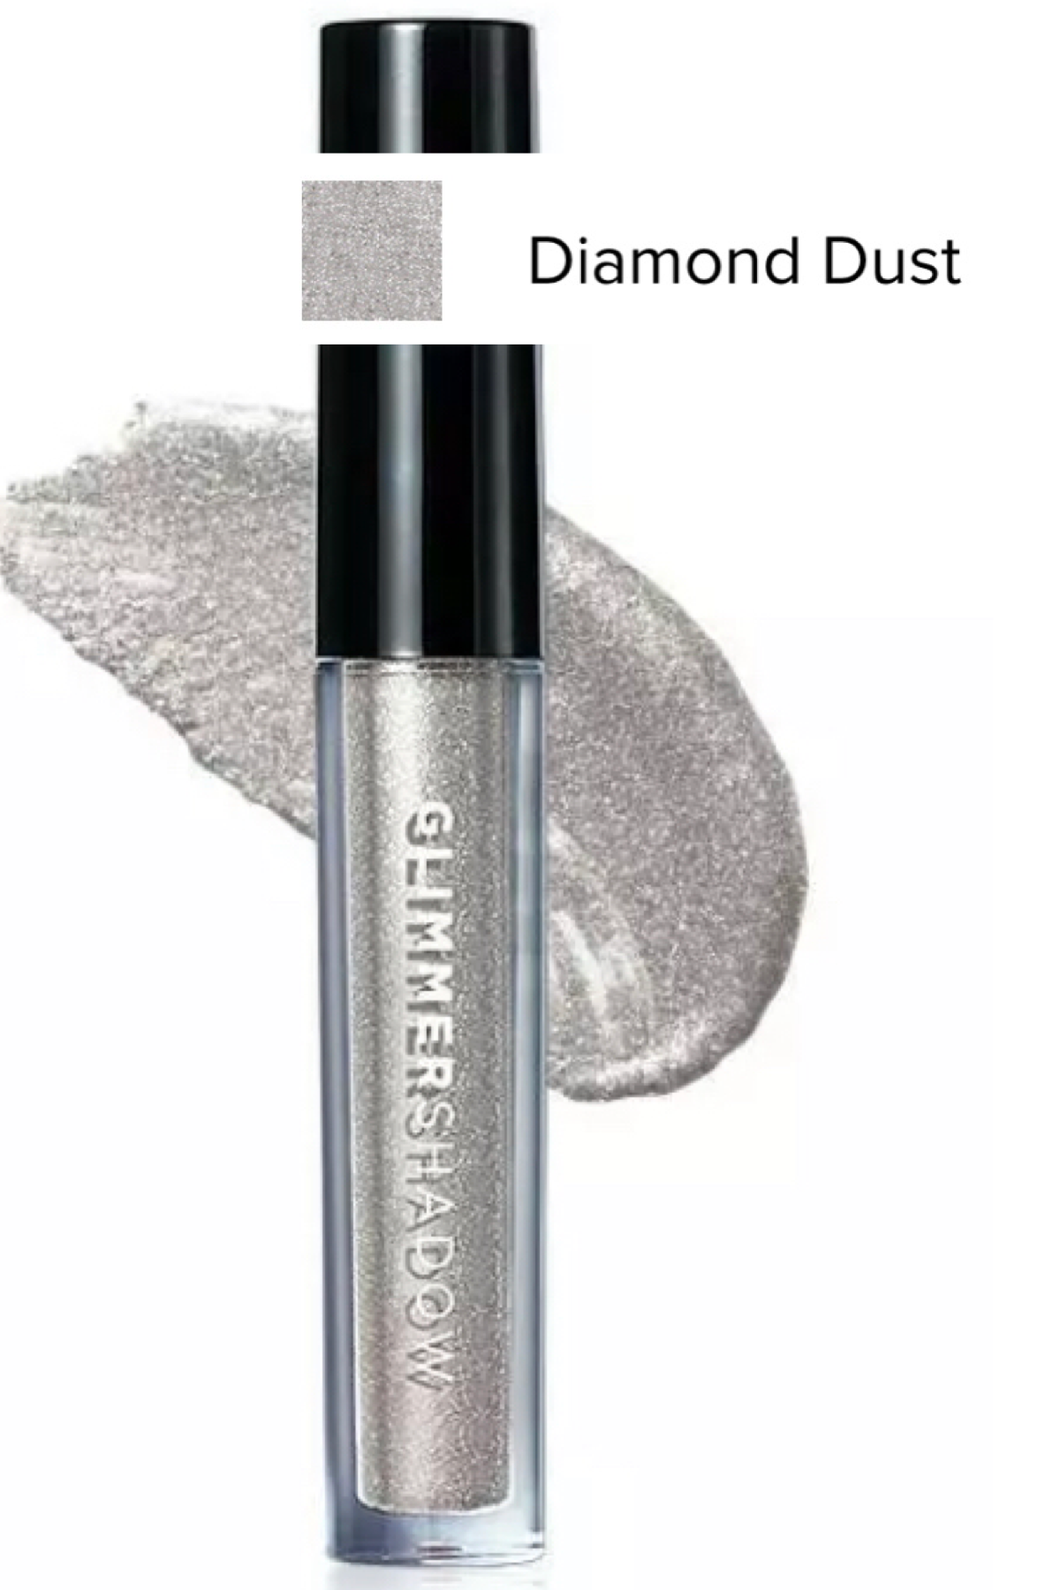 Diamond Dust Glimmershadow Liquid Eyeshadow